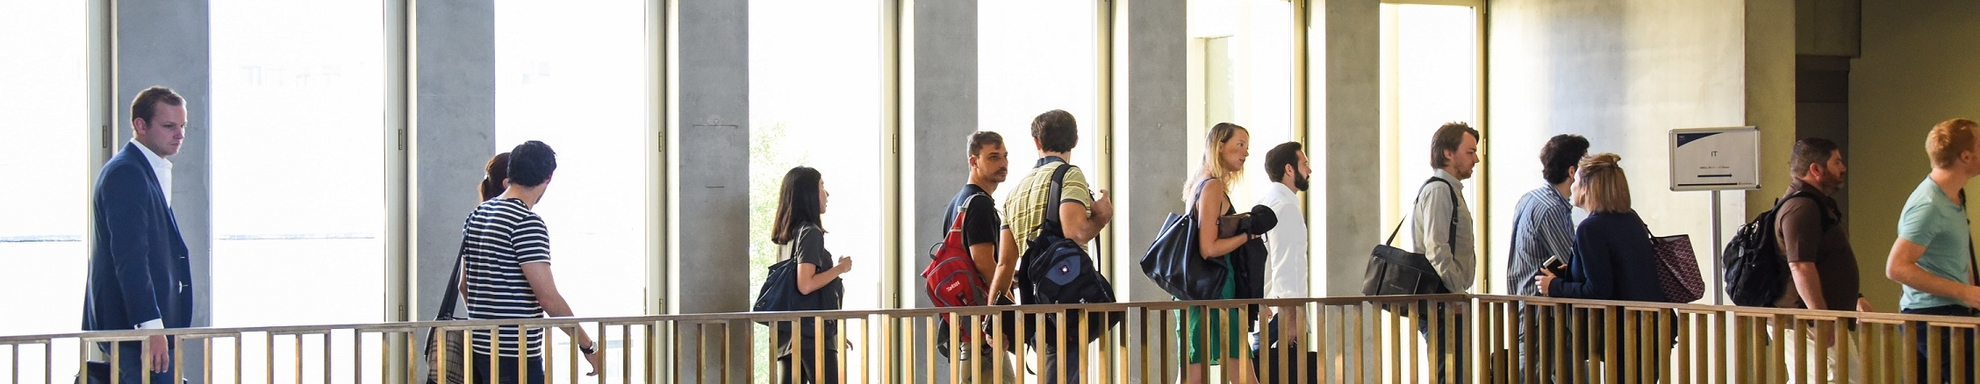 MBA Students in S building lobby